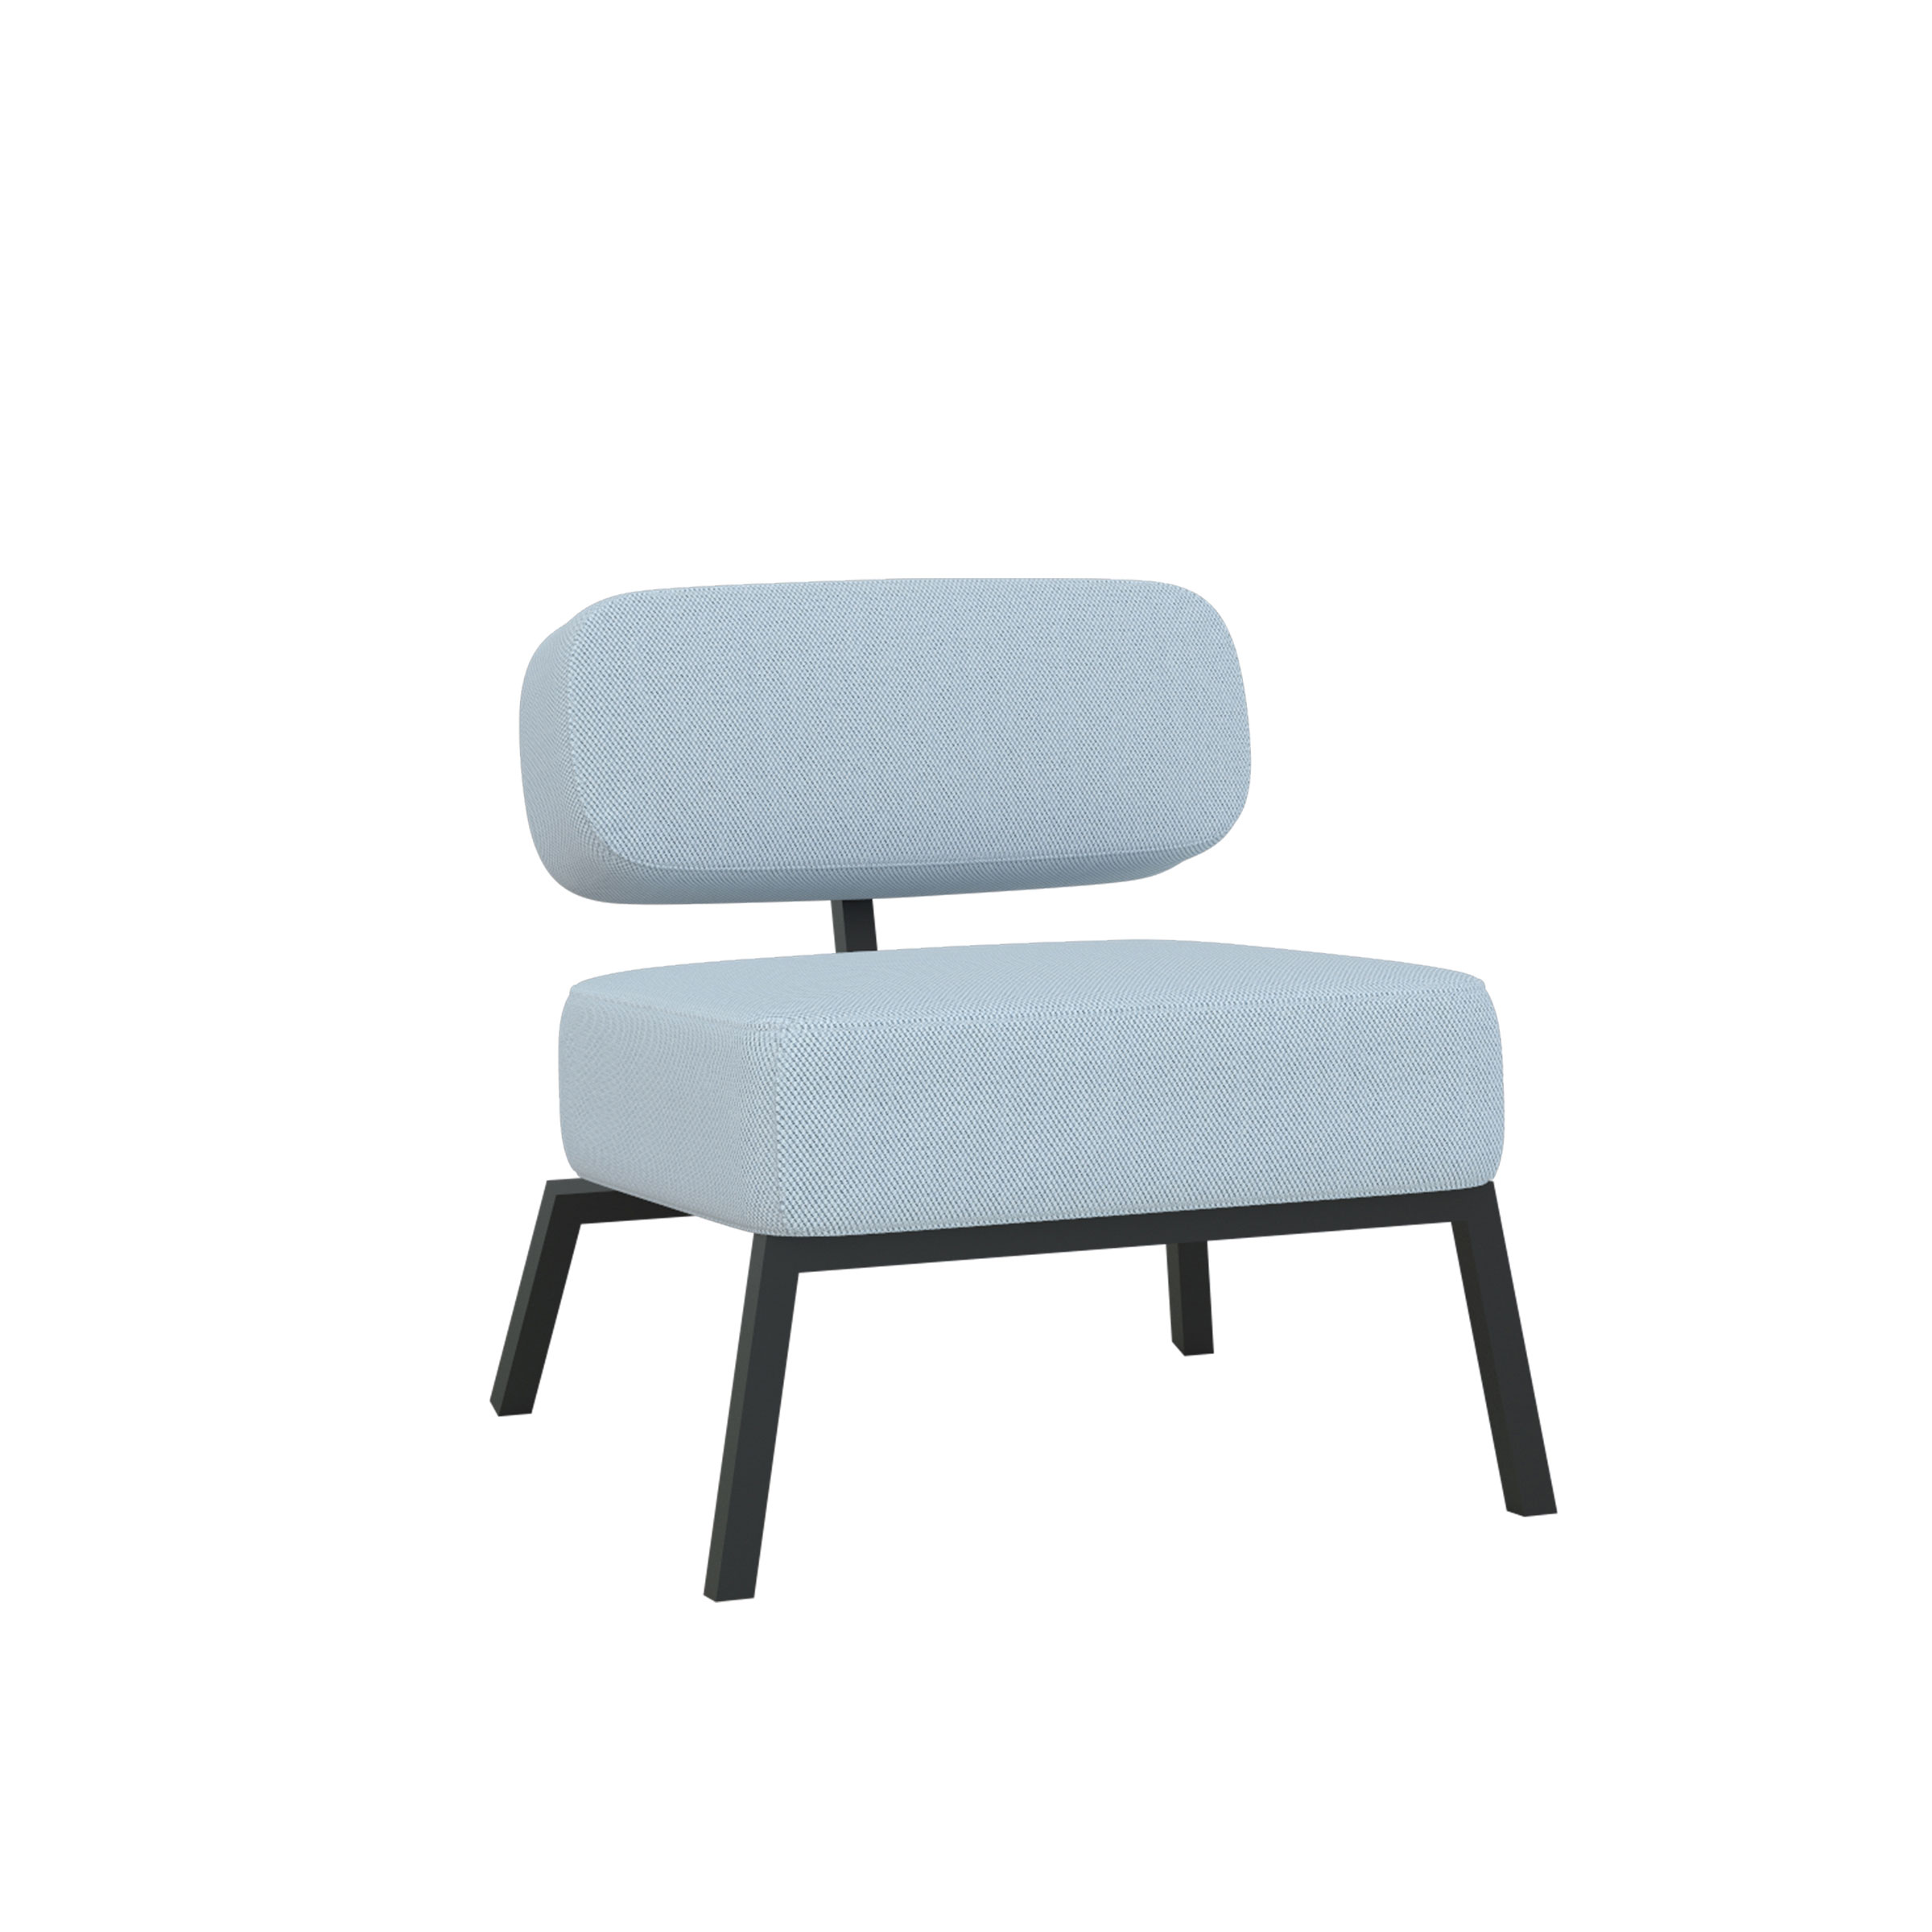 Ode lounge chair 1 seater without armrest